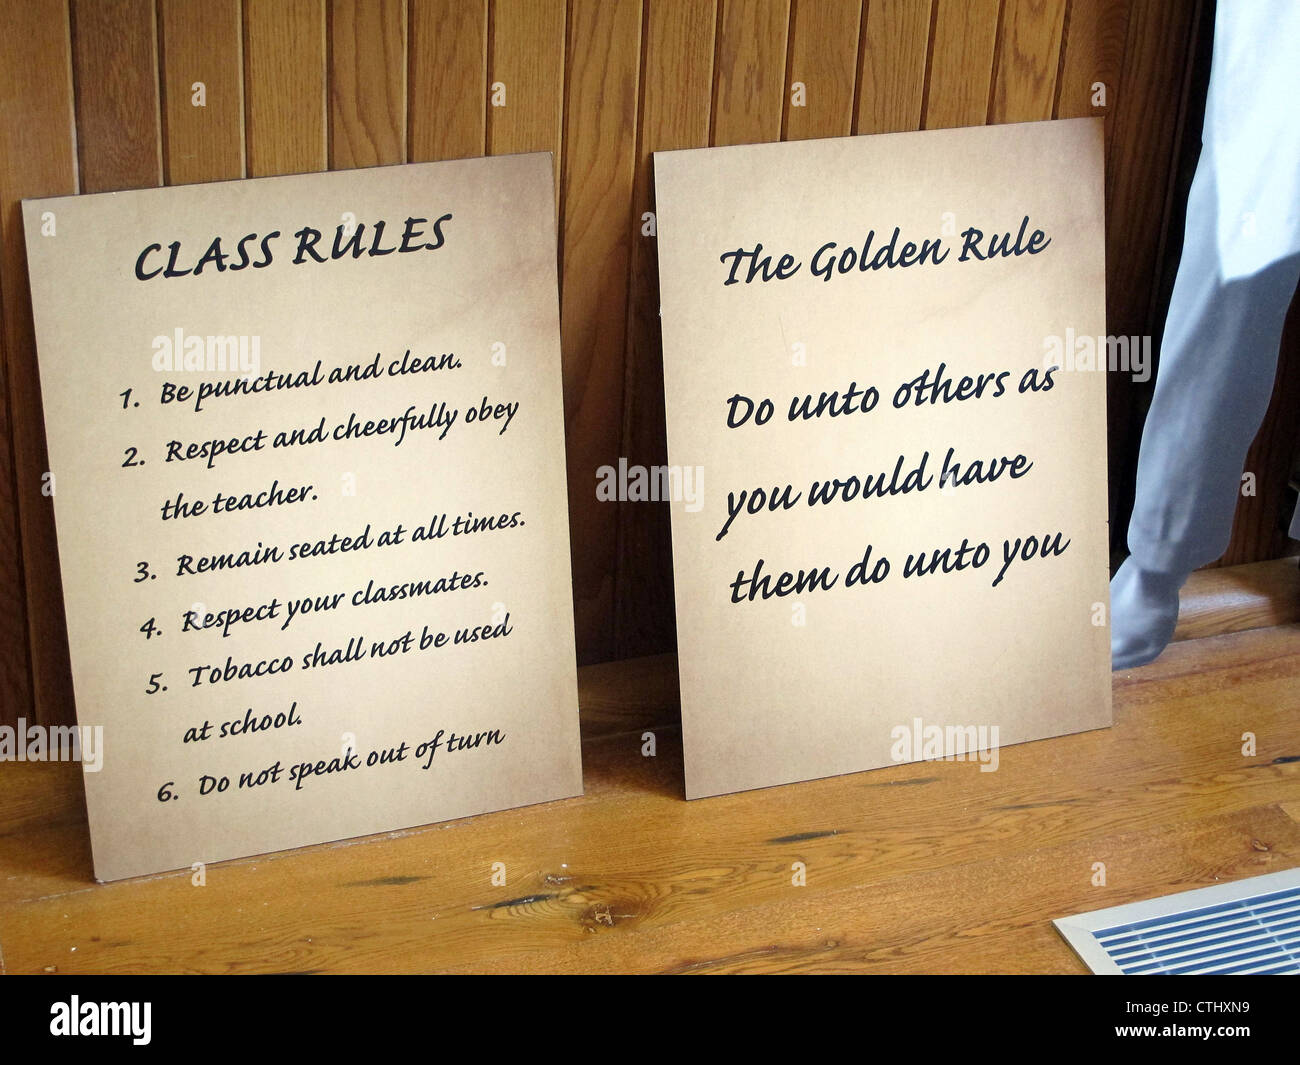 The Golden Rule and Class Rules in the classroom at George Washington Carver National Monument in Diamond, Missouri - Stock Image